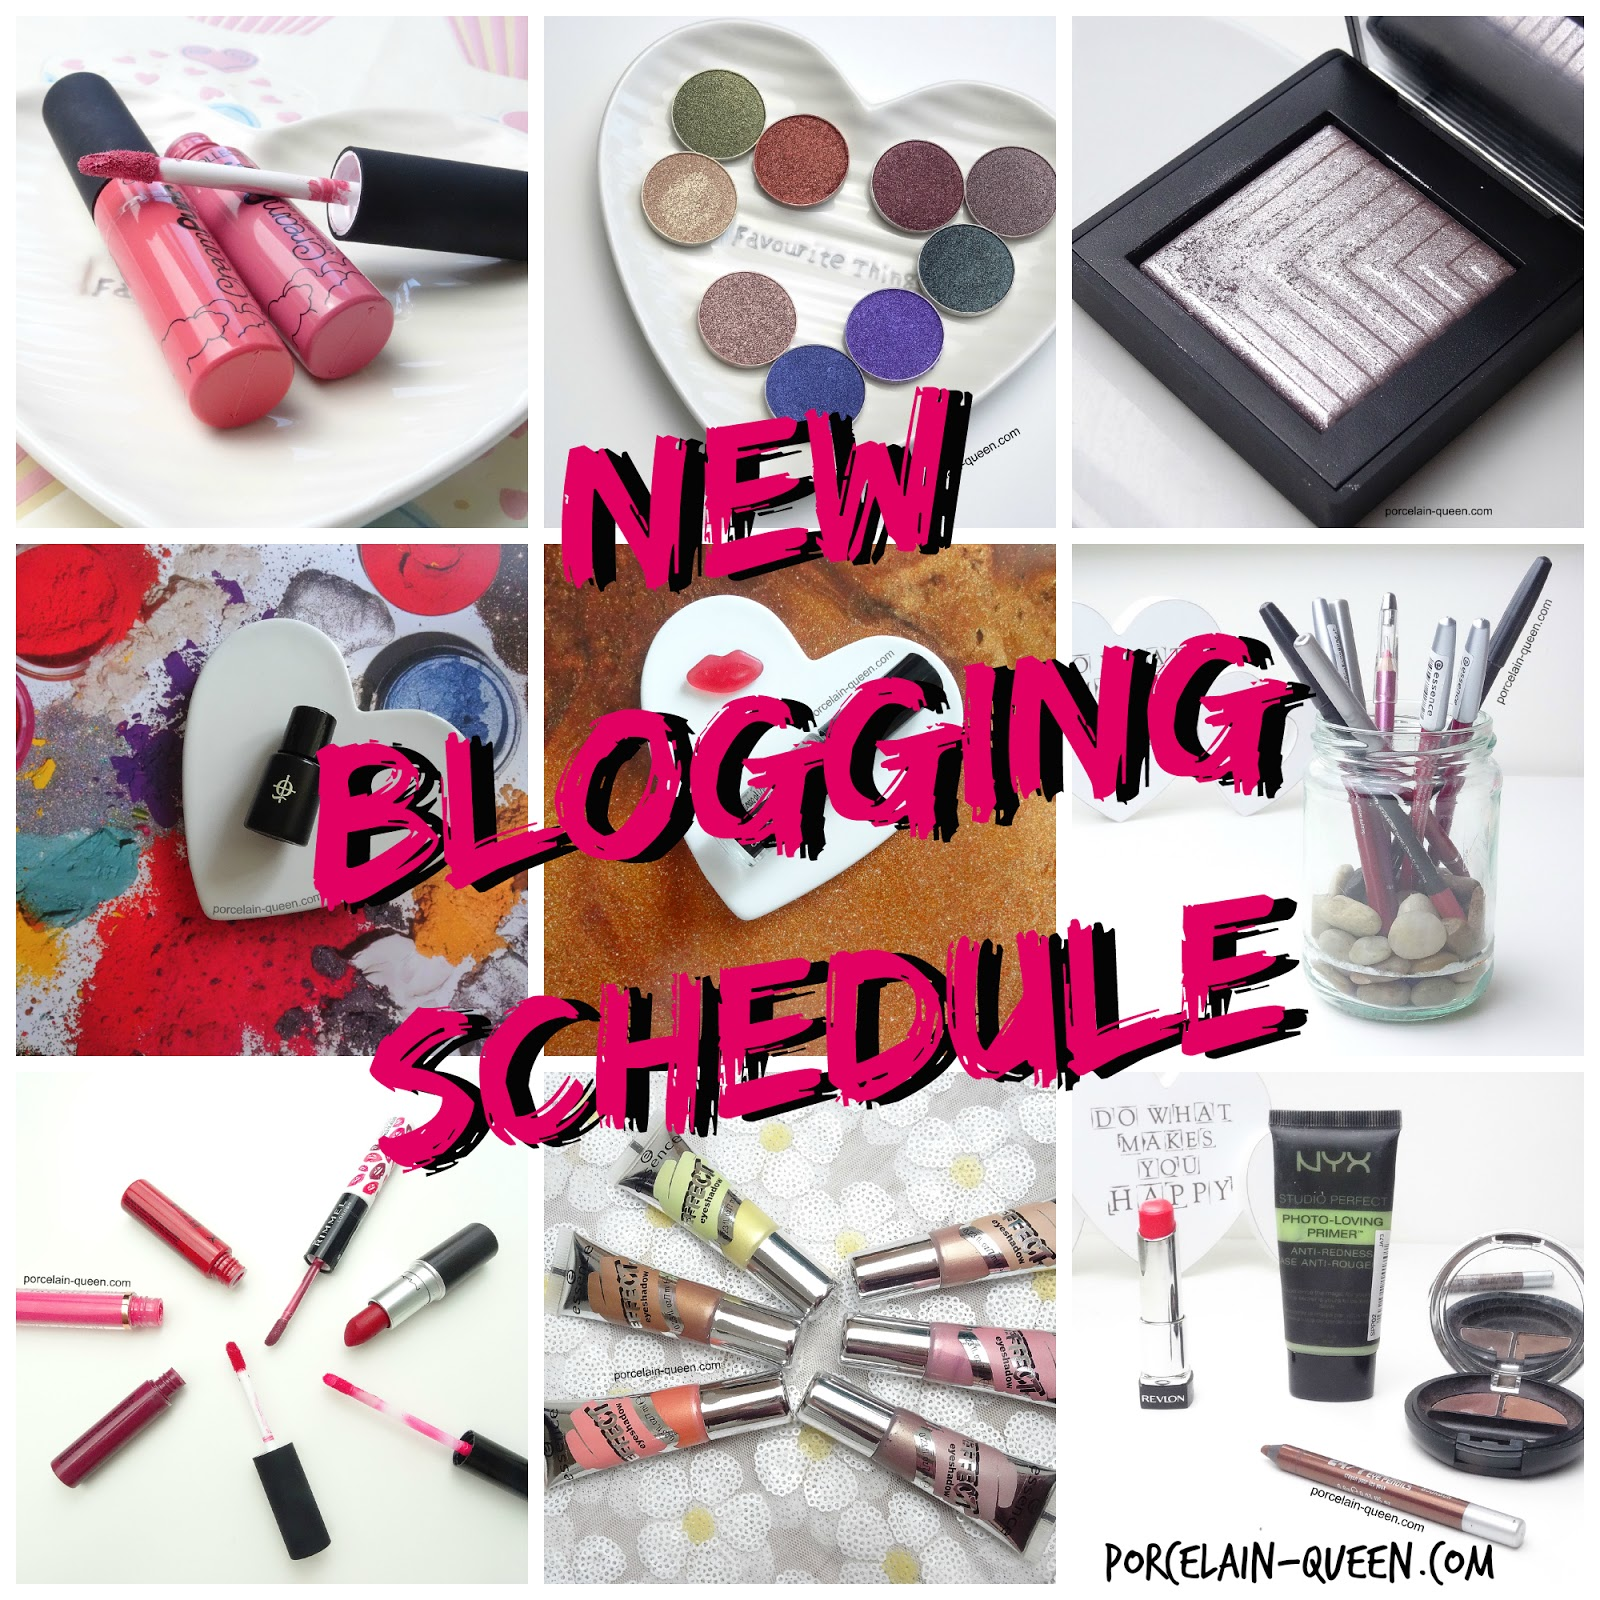 Porcelain Queen Blog Schedule